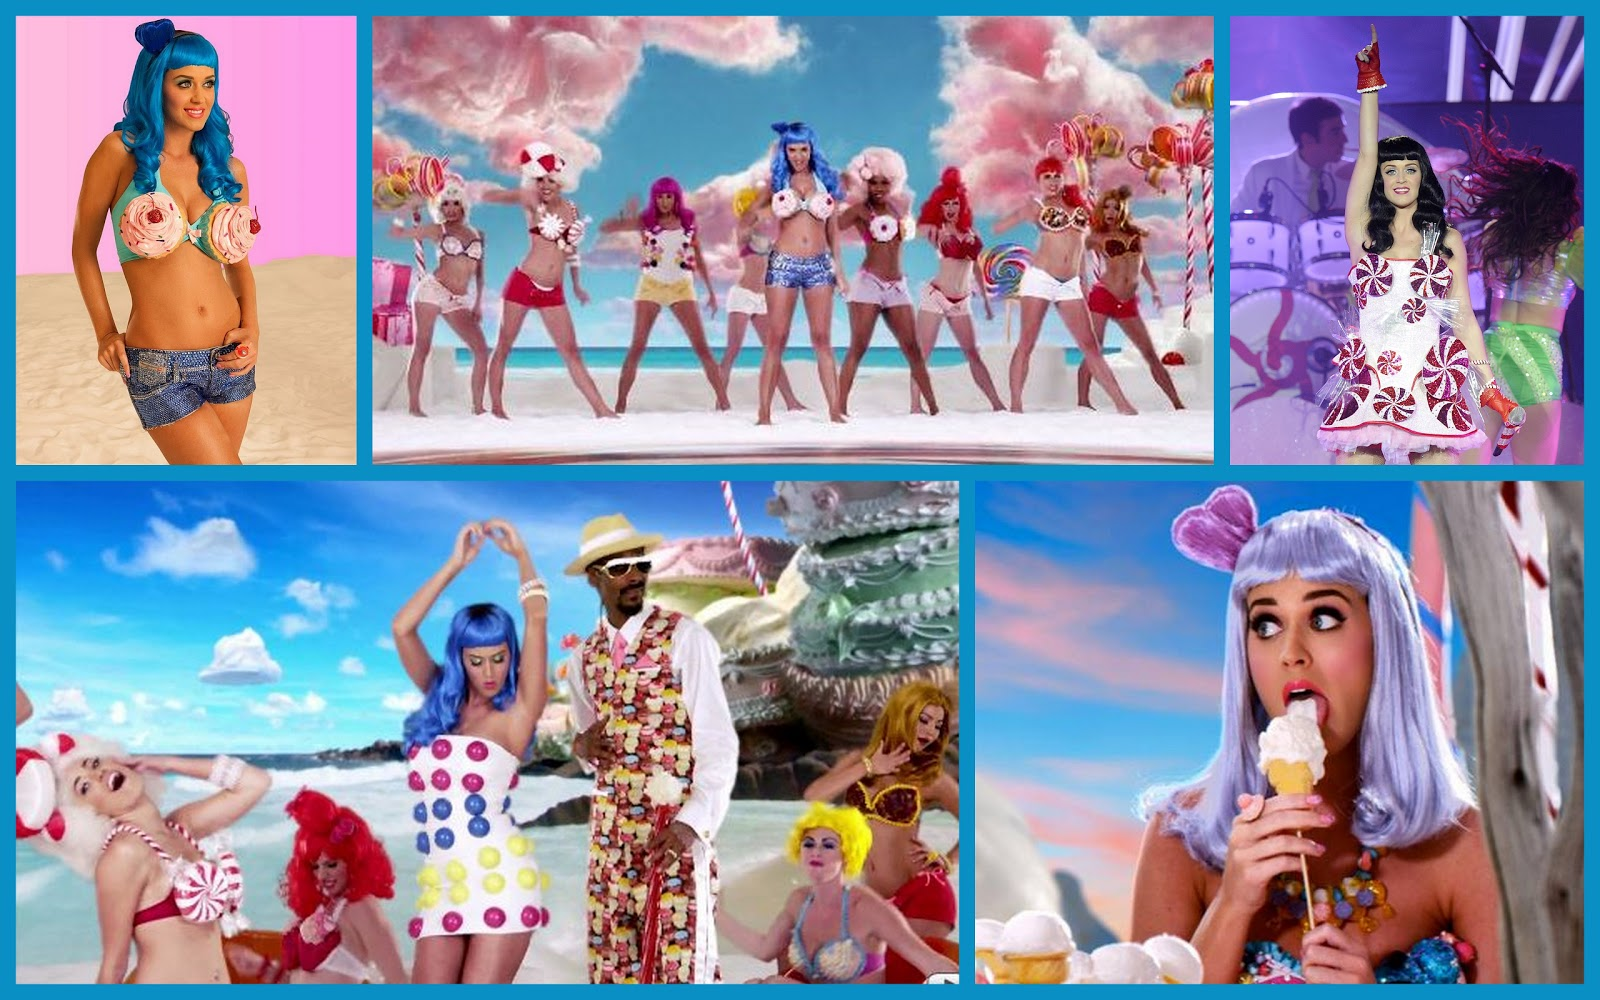 http://2.bp.blogspot.com/-8H_VqZY--b8/Th22uFJDViI/AAAAAAAAhDI/Nh7mZKlvhQ8/s1600/Katy+Perry+candy+outfits+California+girls+video.jpg